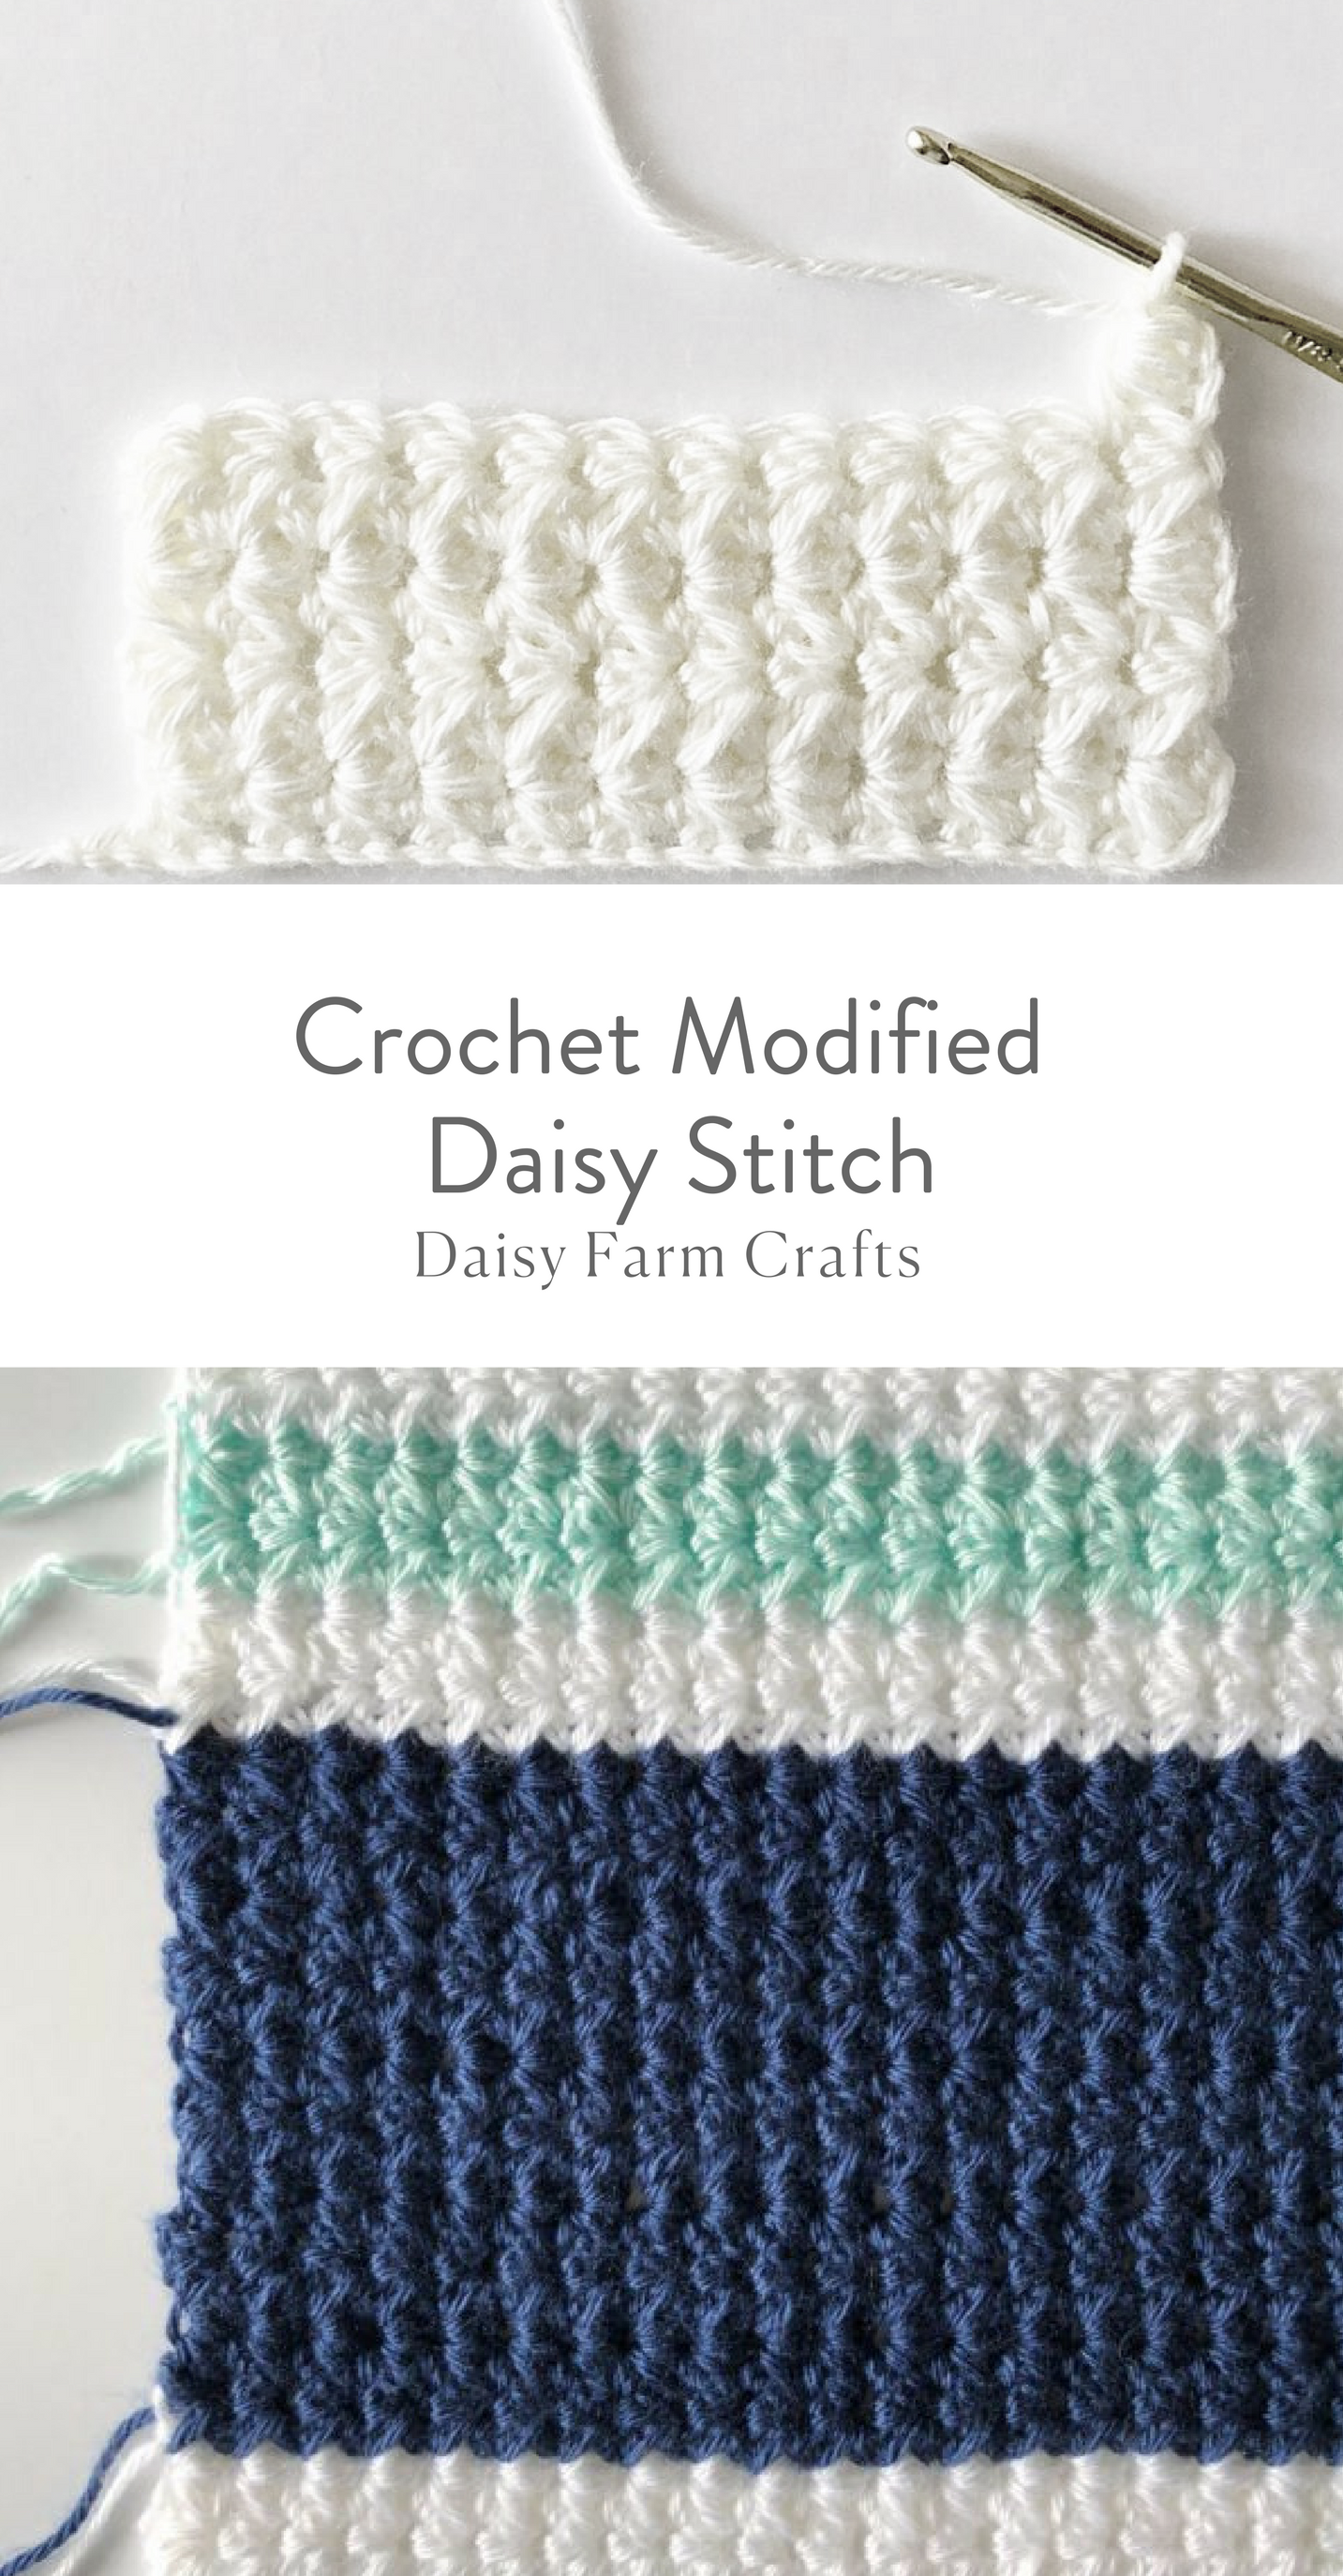 How to Crochet the Modified Daisy Stitch | Knit/Crochet Stitches ...